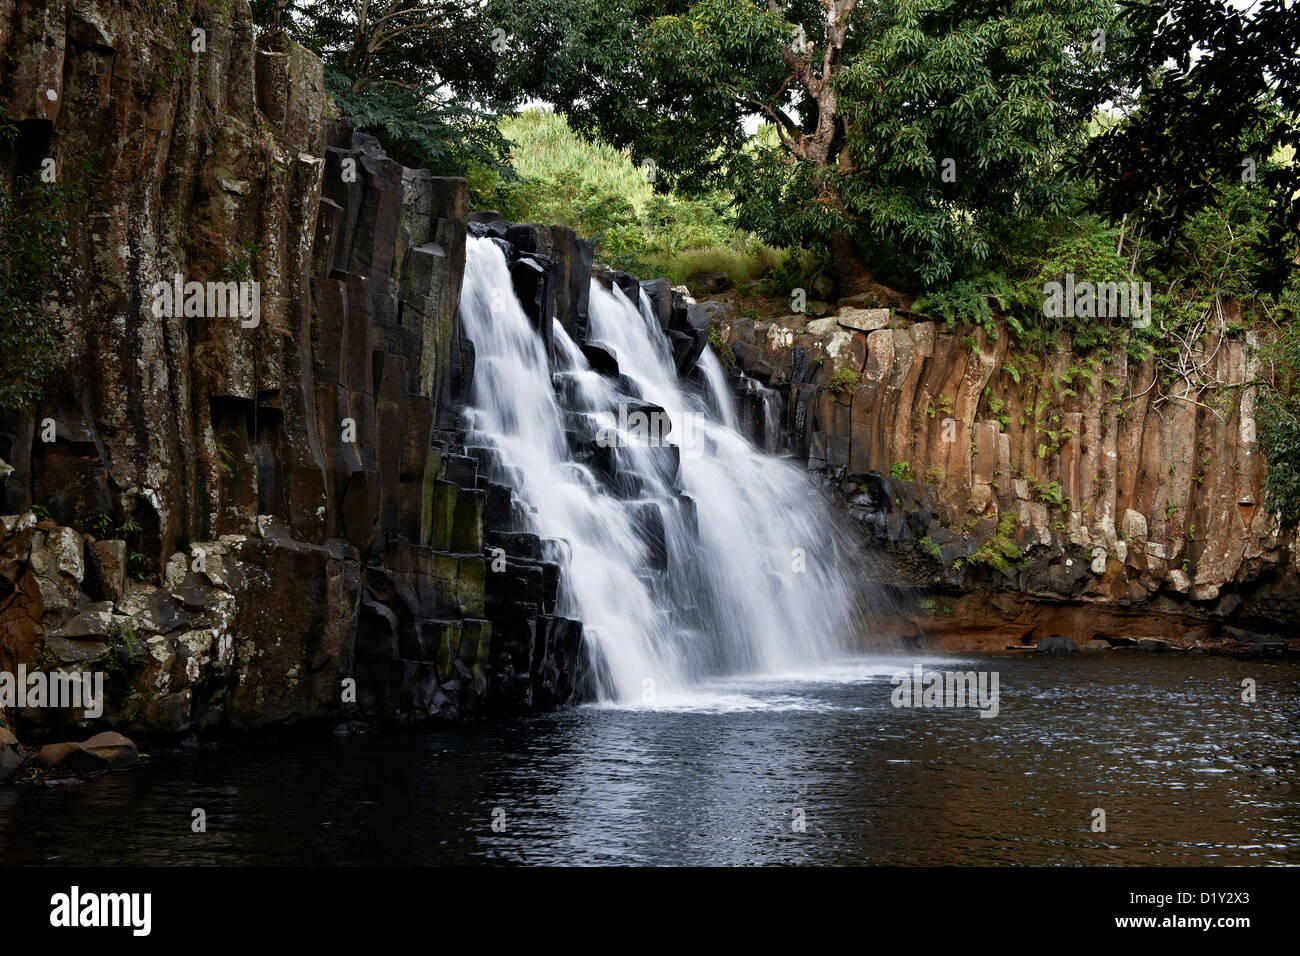 Rochester Falls, Soulliac, Mauritius, Indian Ocean, Africa - Stock Image